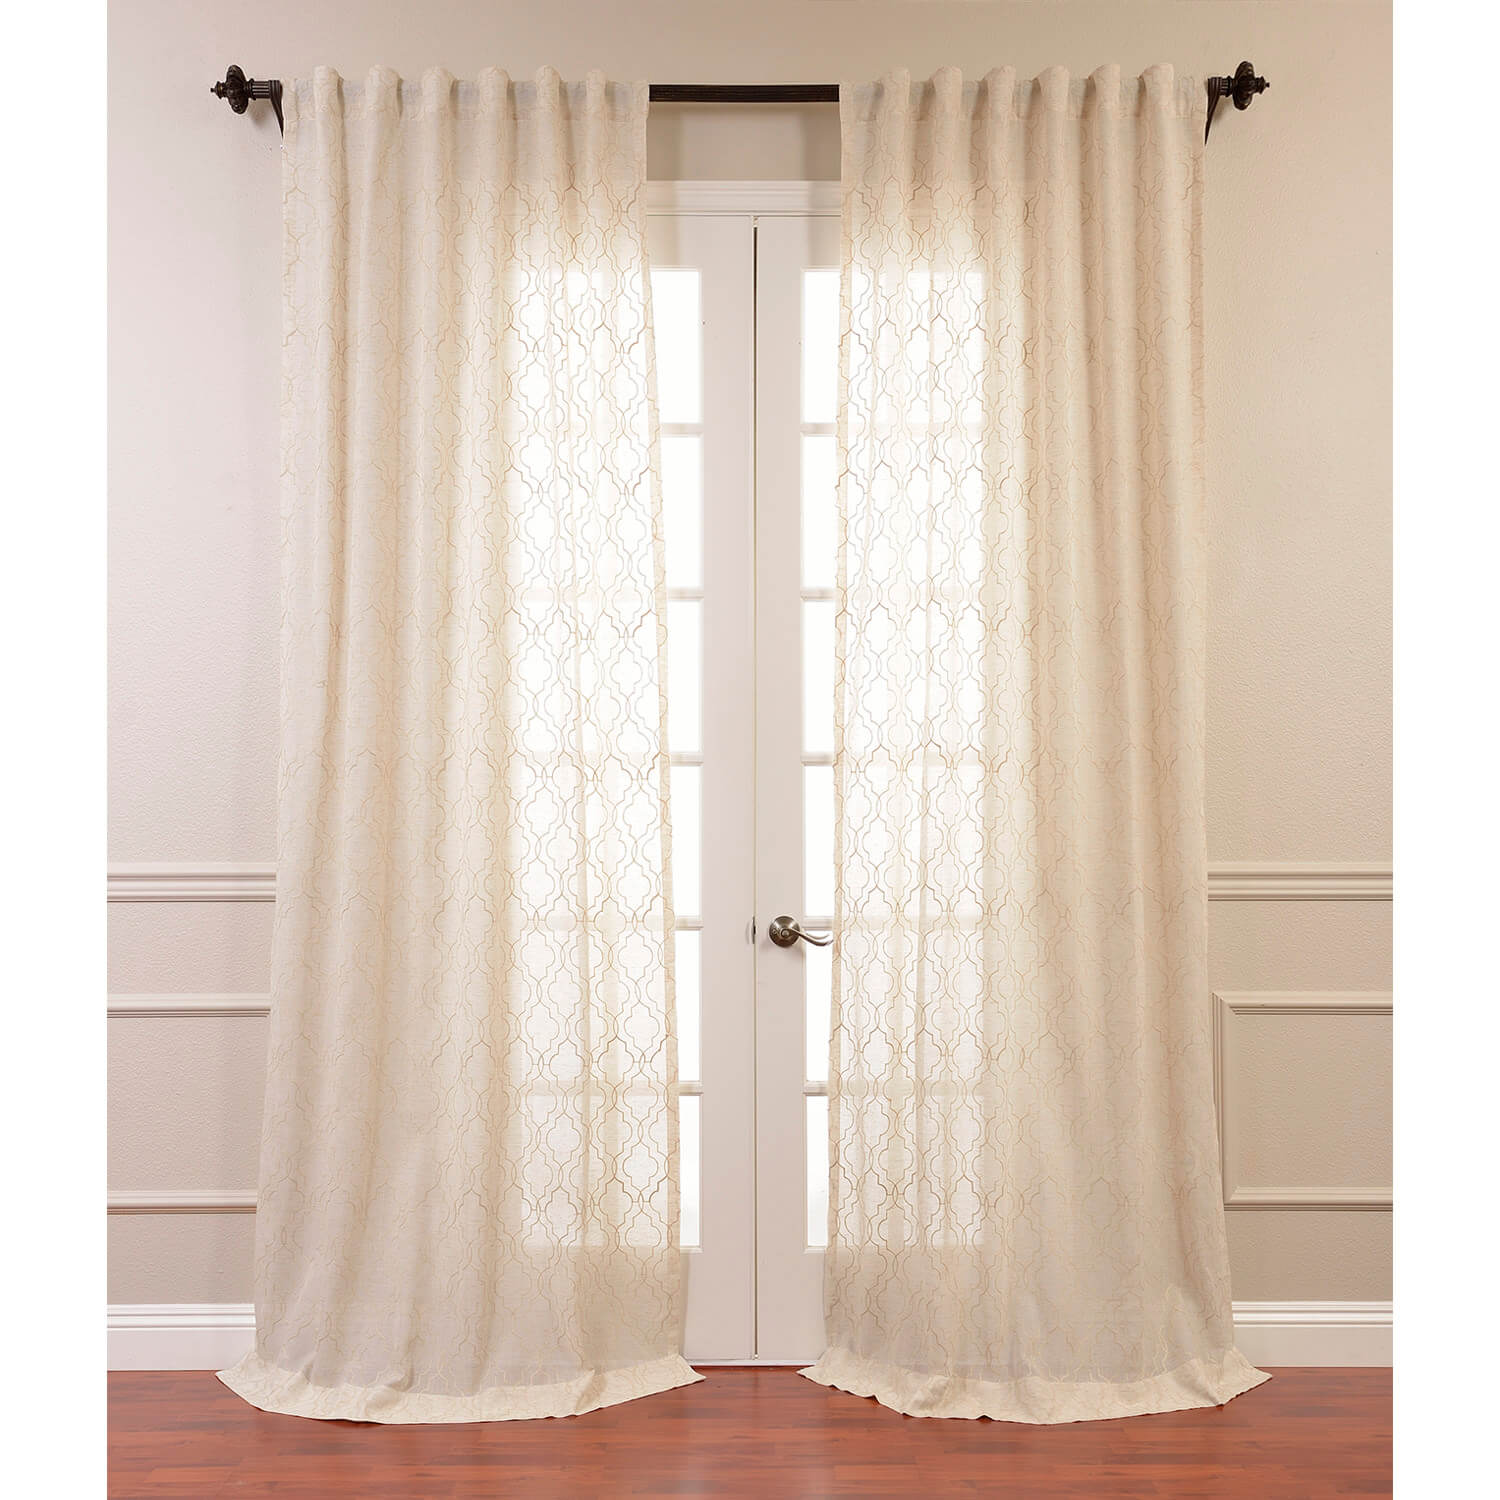 Home Outfitters Window Coverings | Embroidered Curtains | Floral Embroidered Curtains